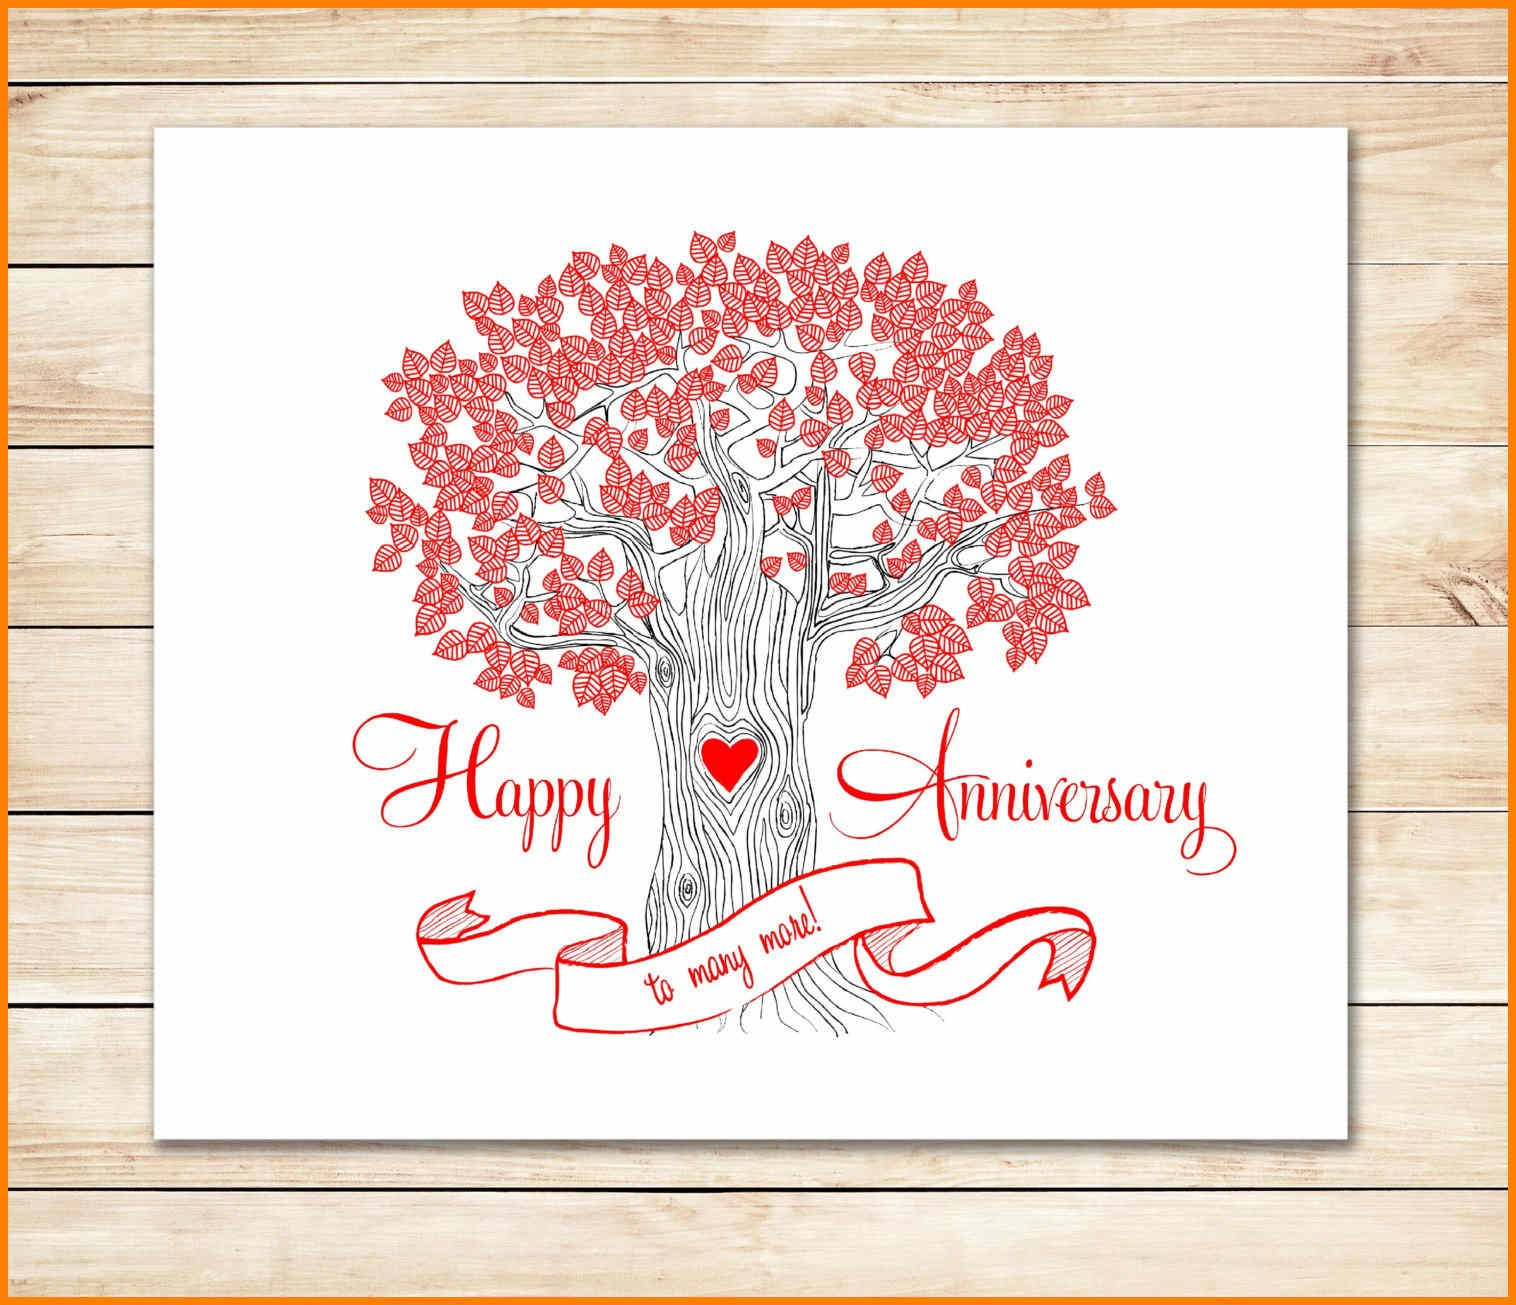 Happy Anniversary Templates Free  Plasticmouldings Regarding Template For Anniversary Card